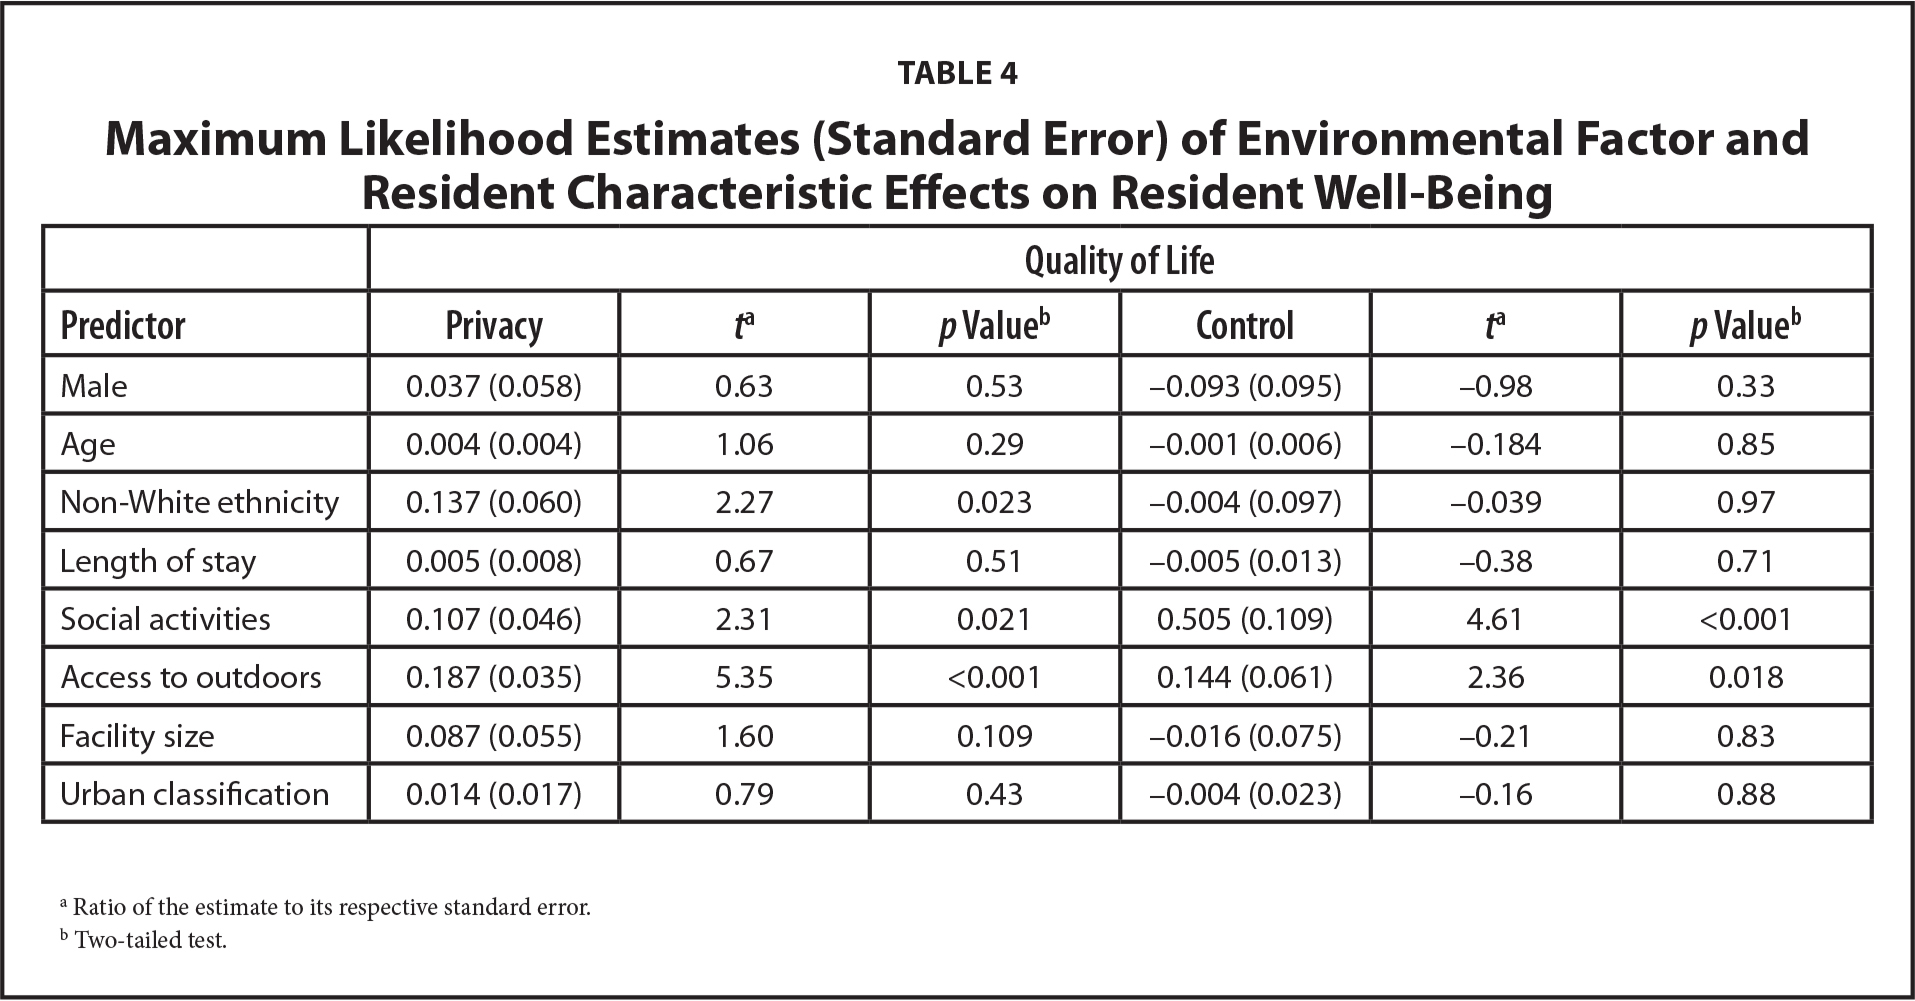 Maximum Likelihood Estimates (Standard Error) of Environmental Factor and Resident Characteristic Effects on Resident Well-Being